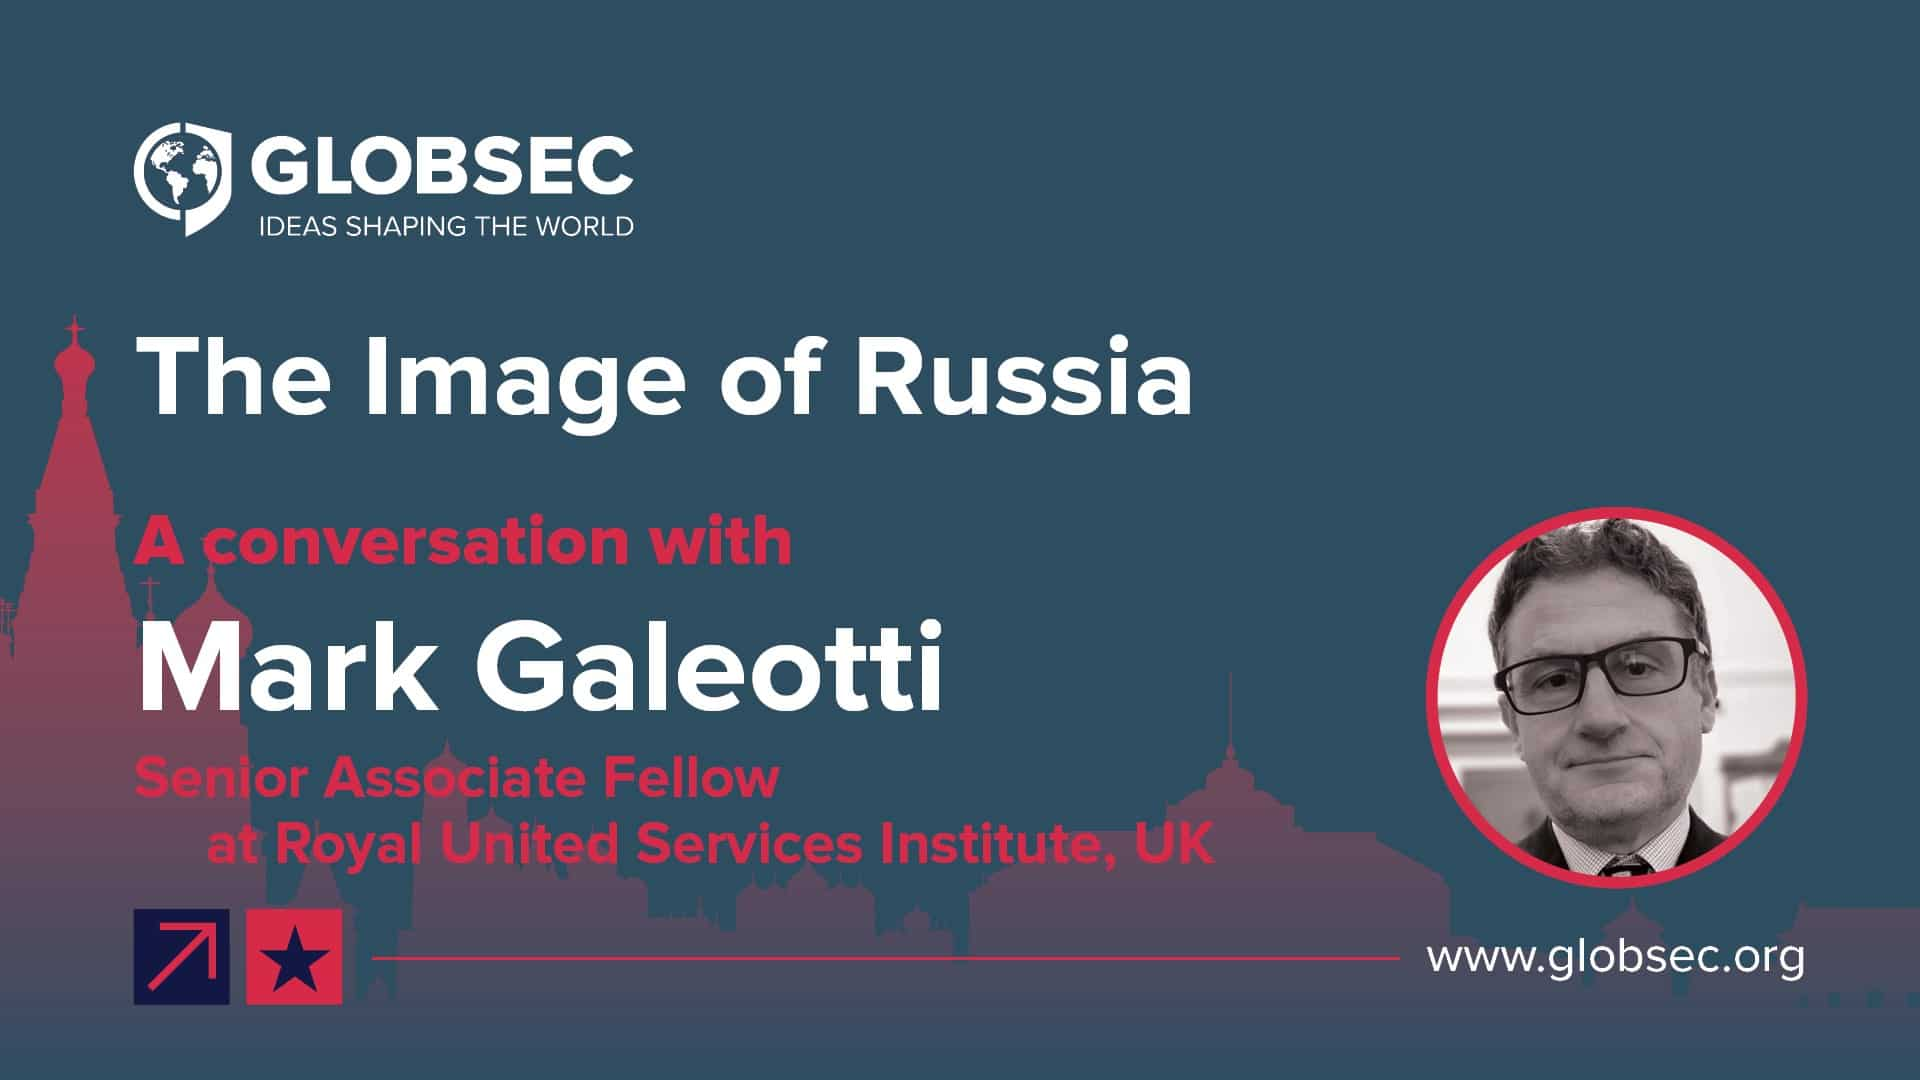 Image of Russia: Conversation with Mark Galeotti